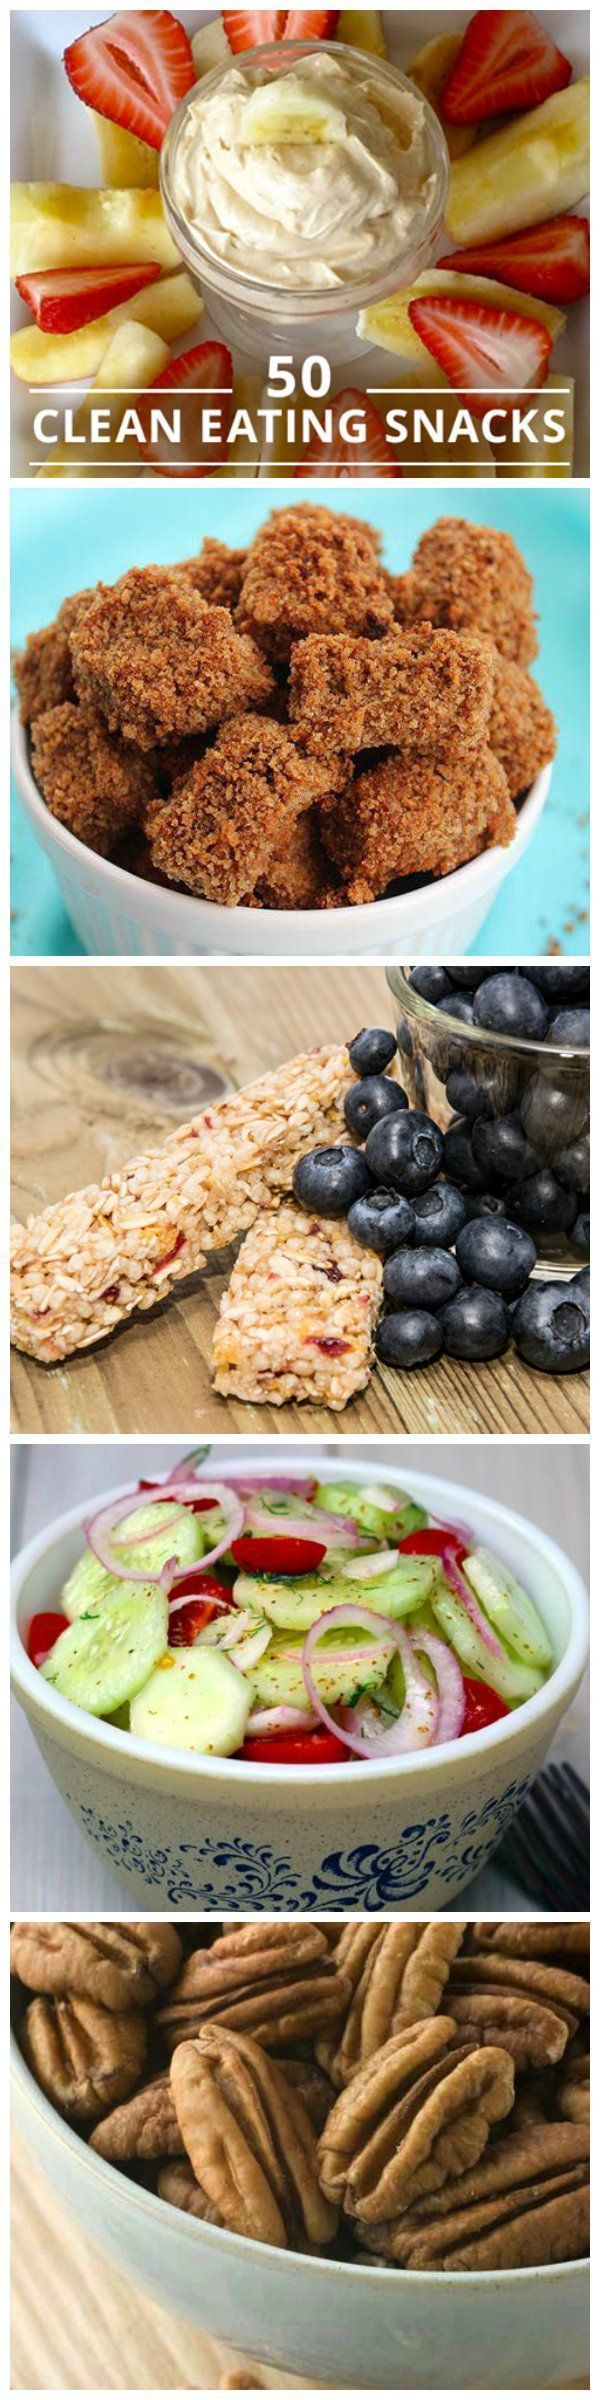 Healthy Clean Eating Snacks  17 Best images about Clean Eating Snacks on Pinterest